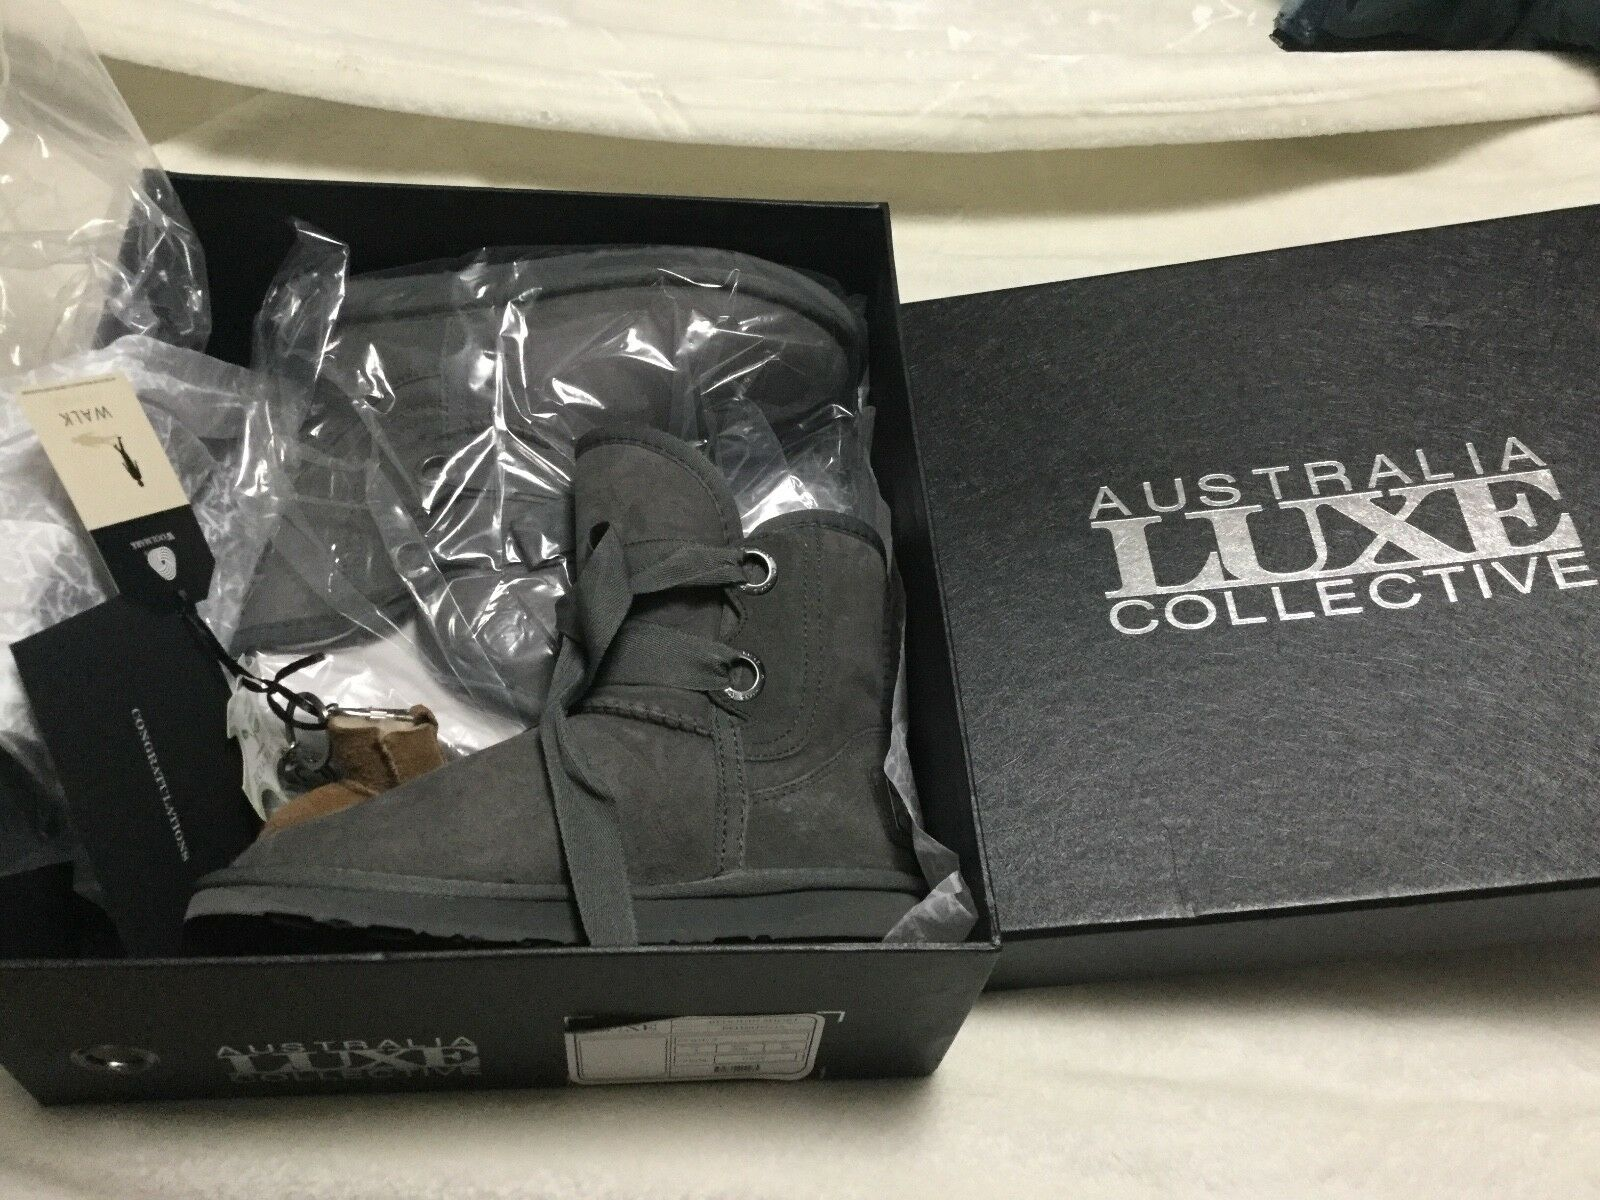 Australia Luxe Collective boots, brand new with box, size 5